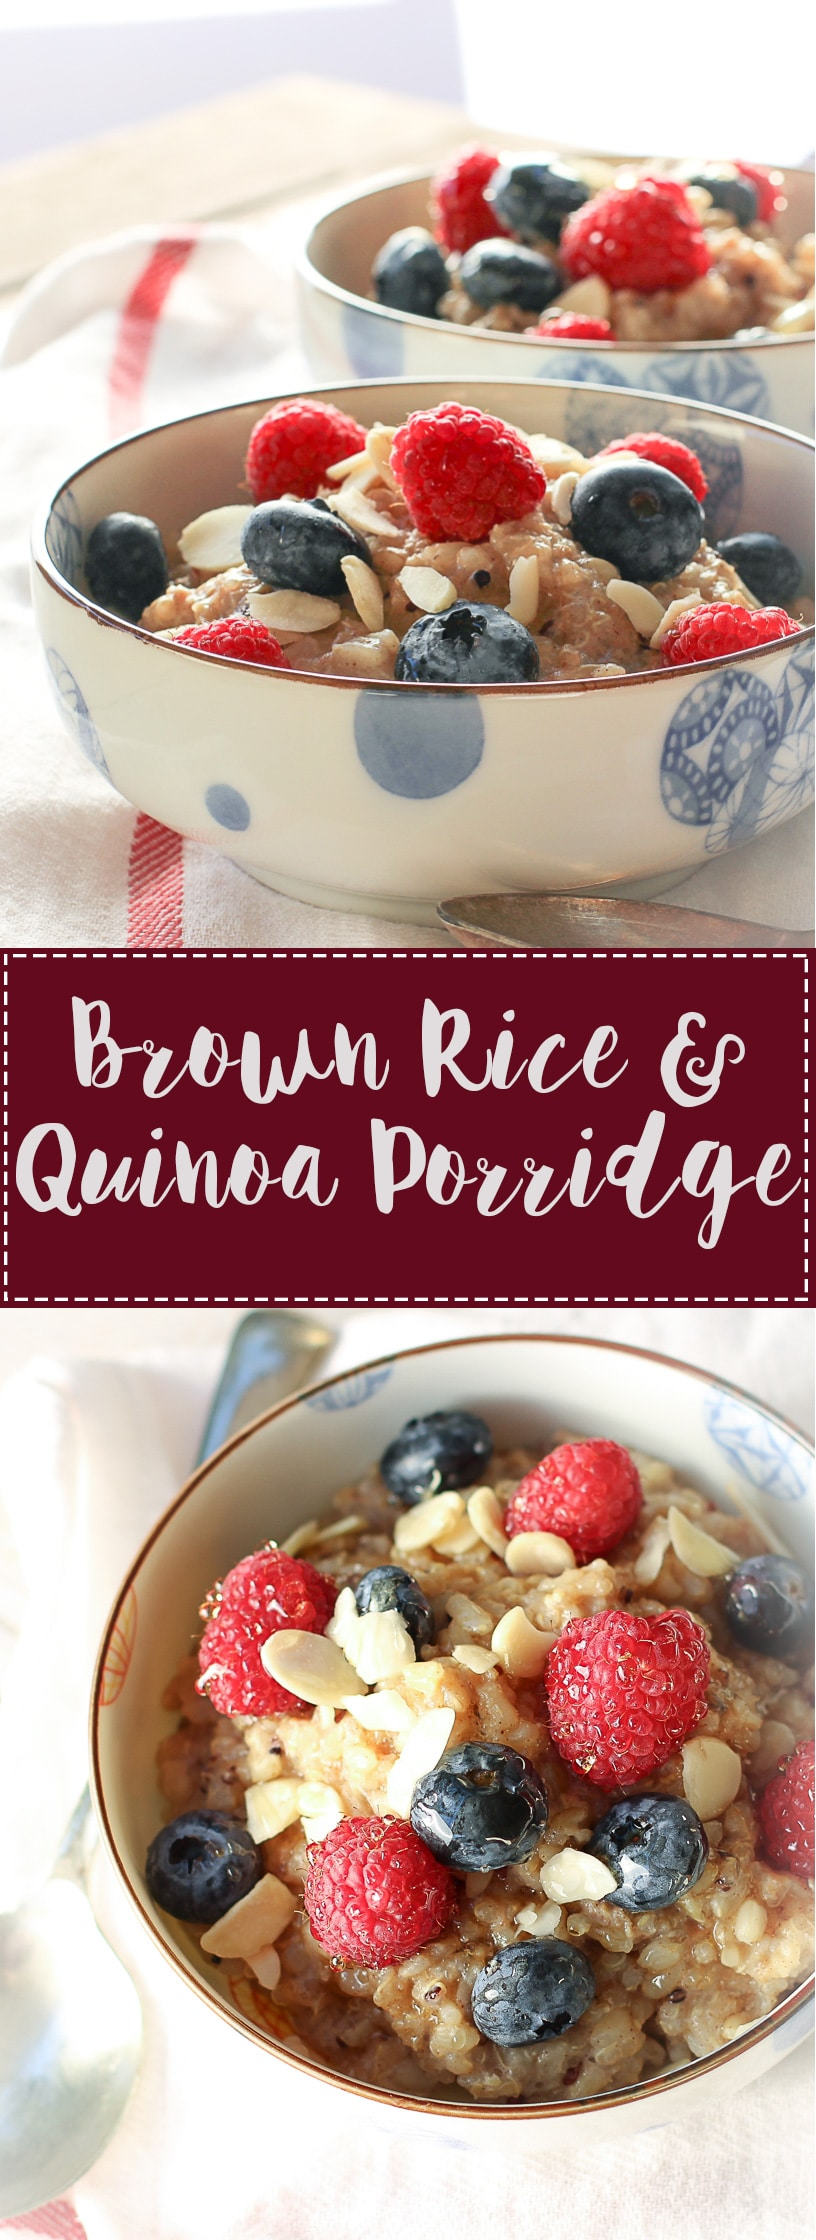 Brown-rice-&-Quinoa-porridge-pinterest-1